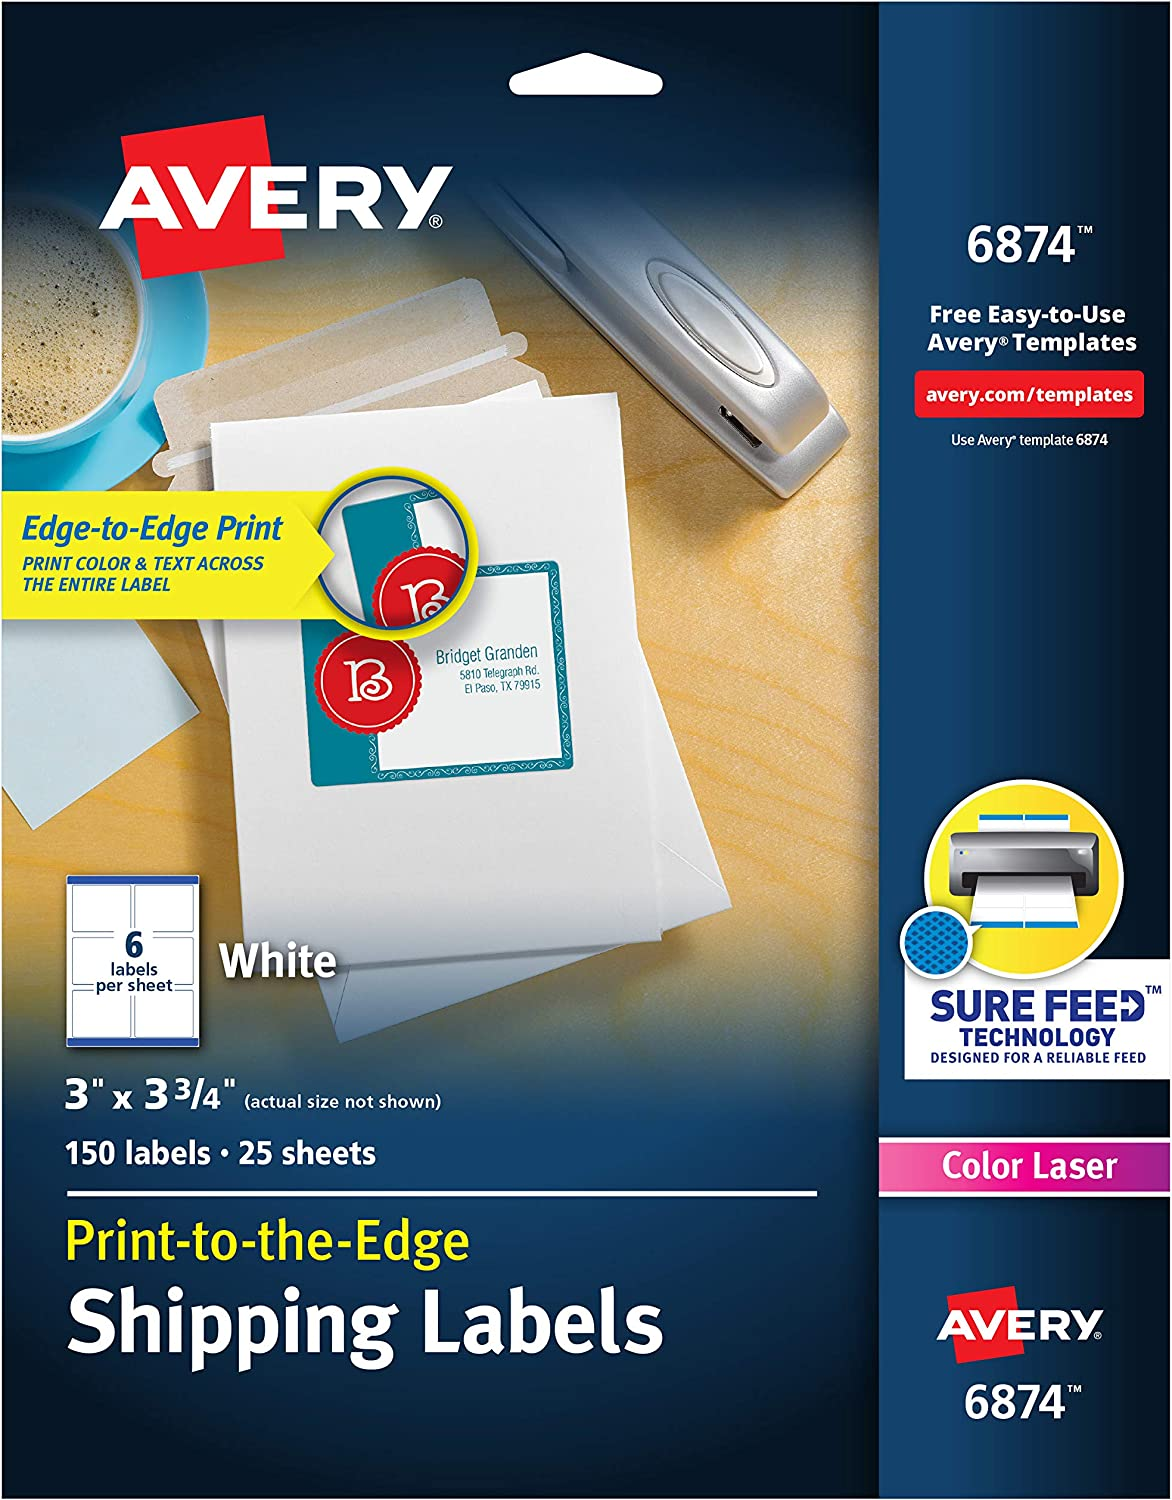 "Avery Shipping Labels with Sure Feed, Print-to-the-Edge, 3"" x 3-3/4"", 150 White Labels (6874)"